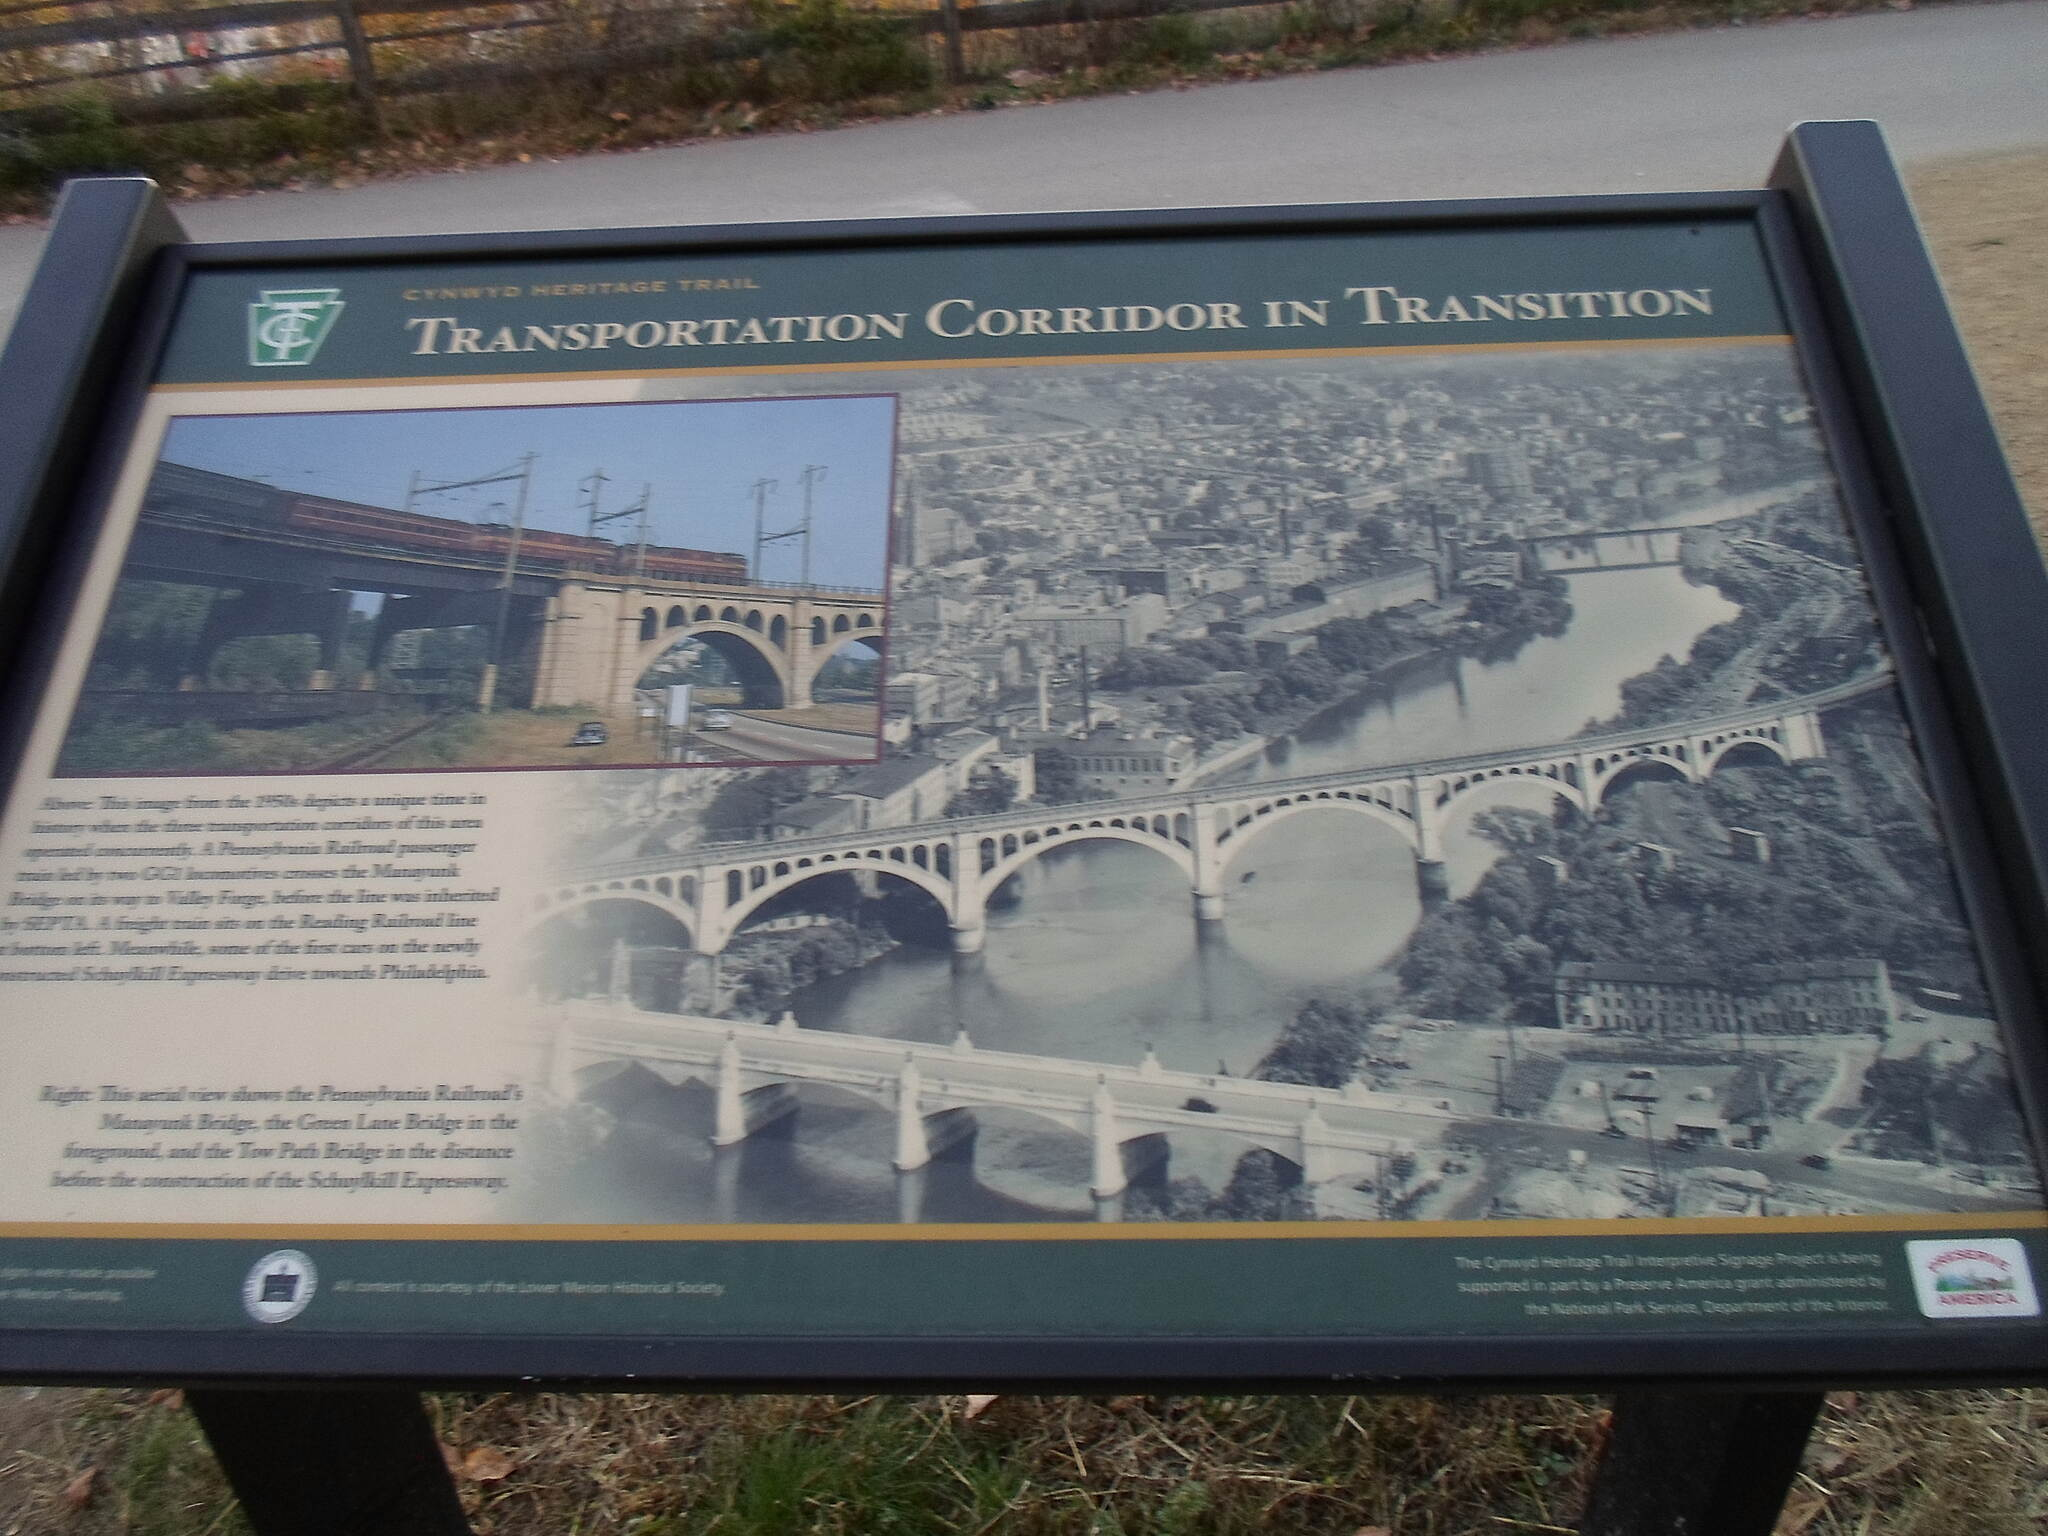 Cynwyd Heritage Trail Cynwyd Heritage Trail This sign details that history of the Schuylkill River and its banks as a major transportation corridor, from canal, to rail, to expressway, and finally to trail.